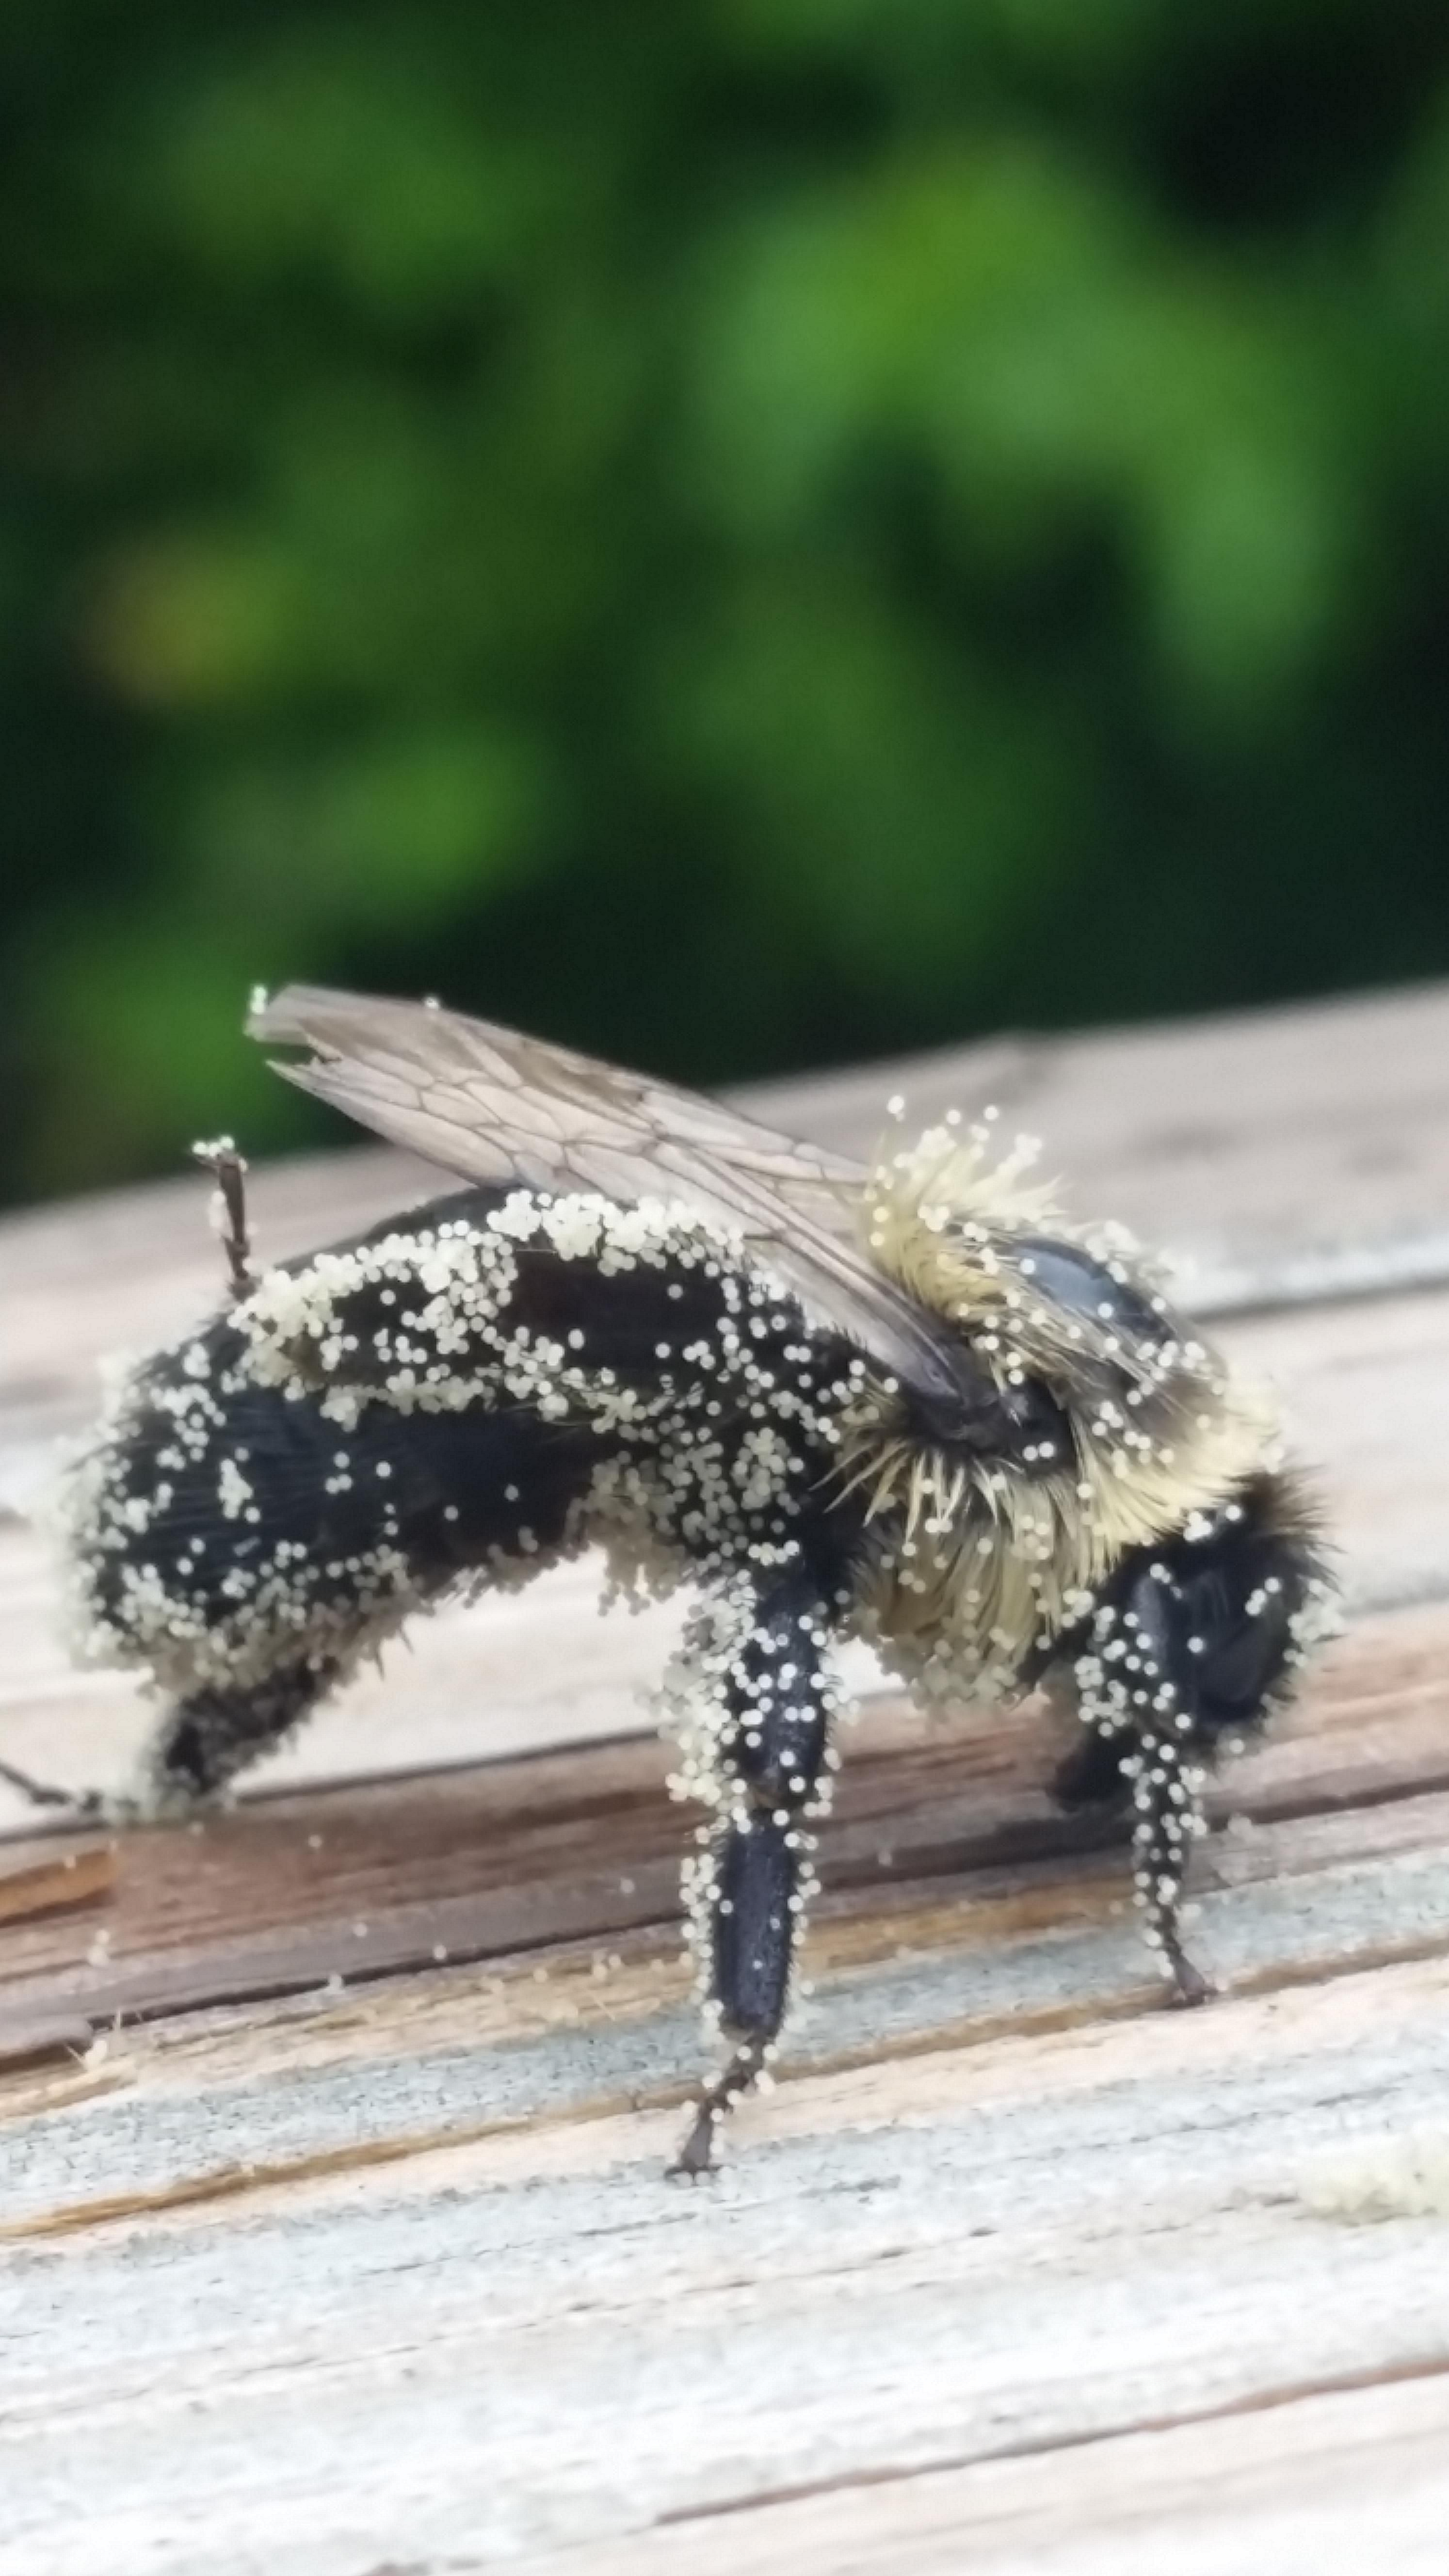 I found a bee covered in pollen outside on my porch and it posed for a nice picture for me. - Imgur